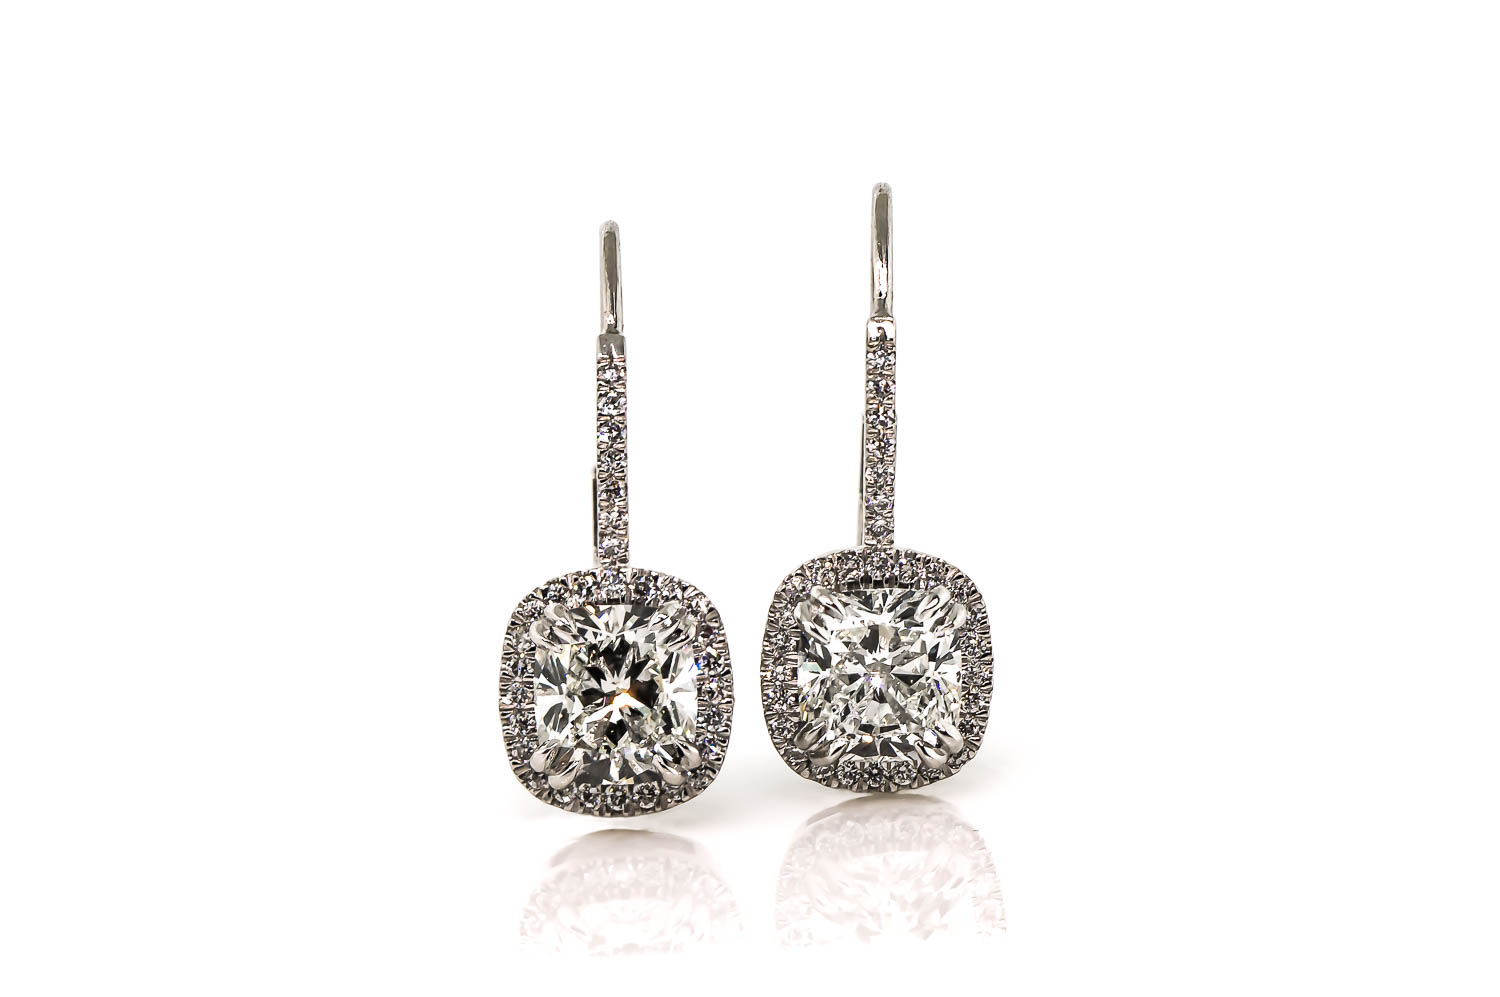 diamond leverback earrings (1 of 1)-2.jpg